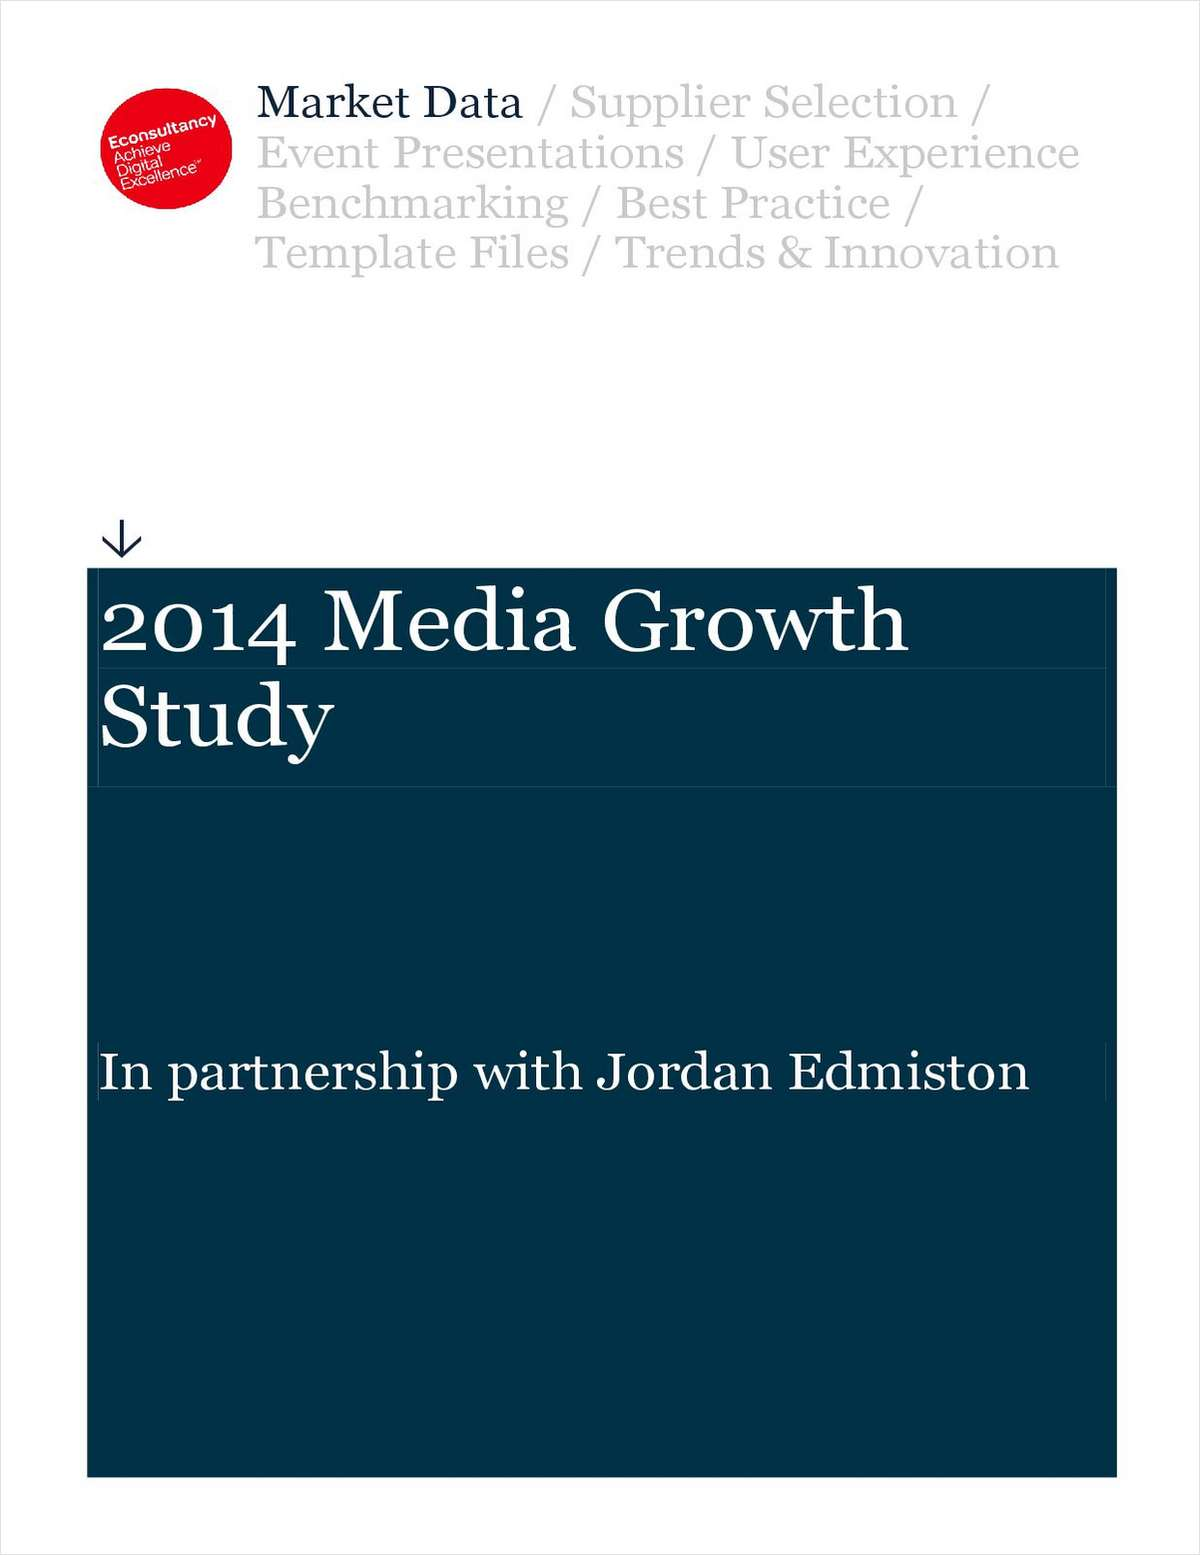 2014 Media Growth Study - An Excerpt